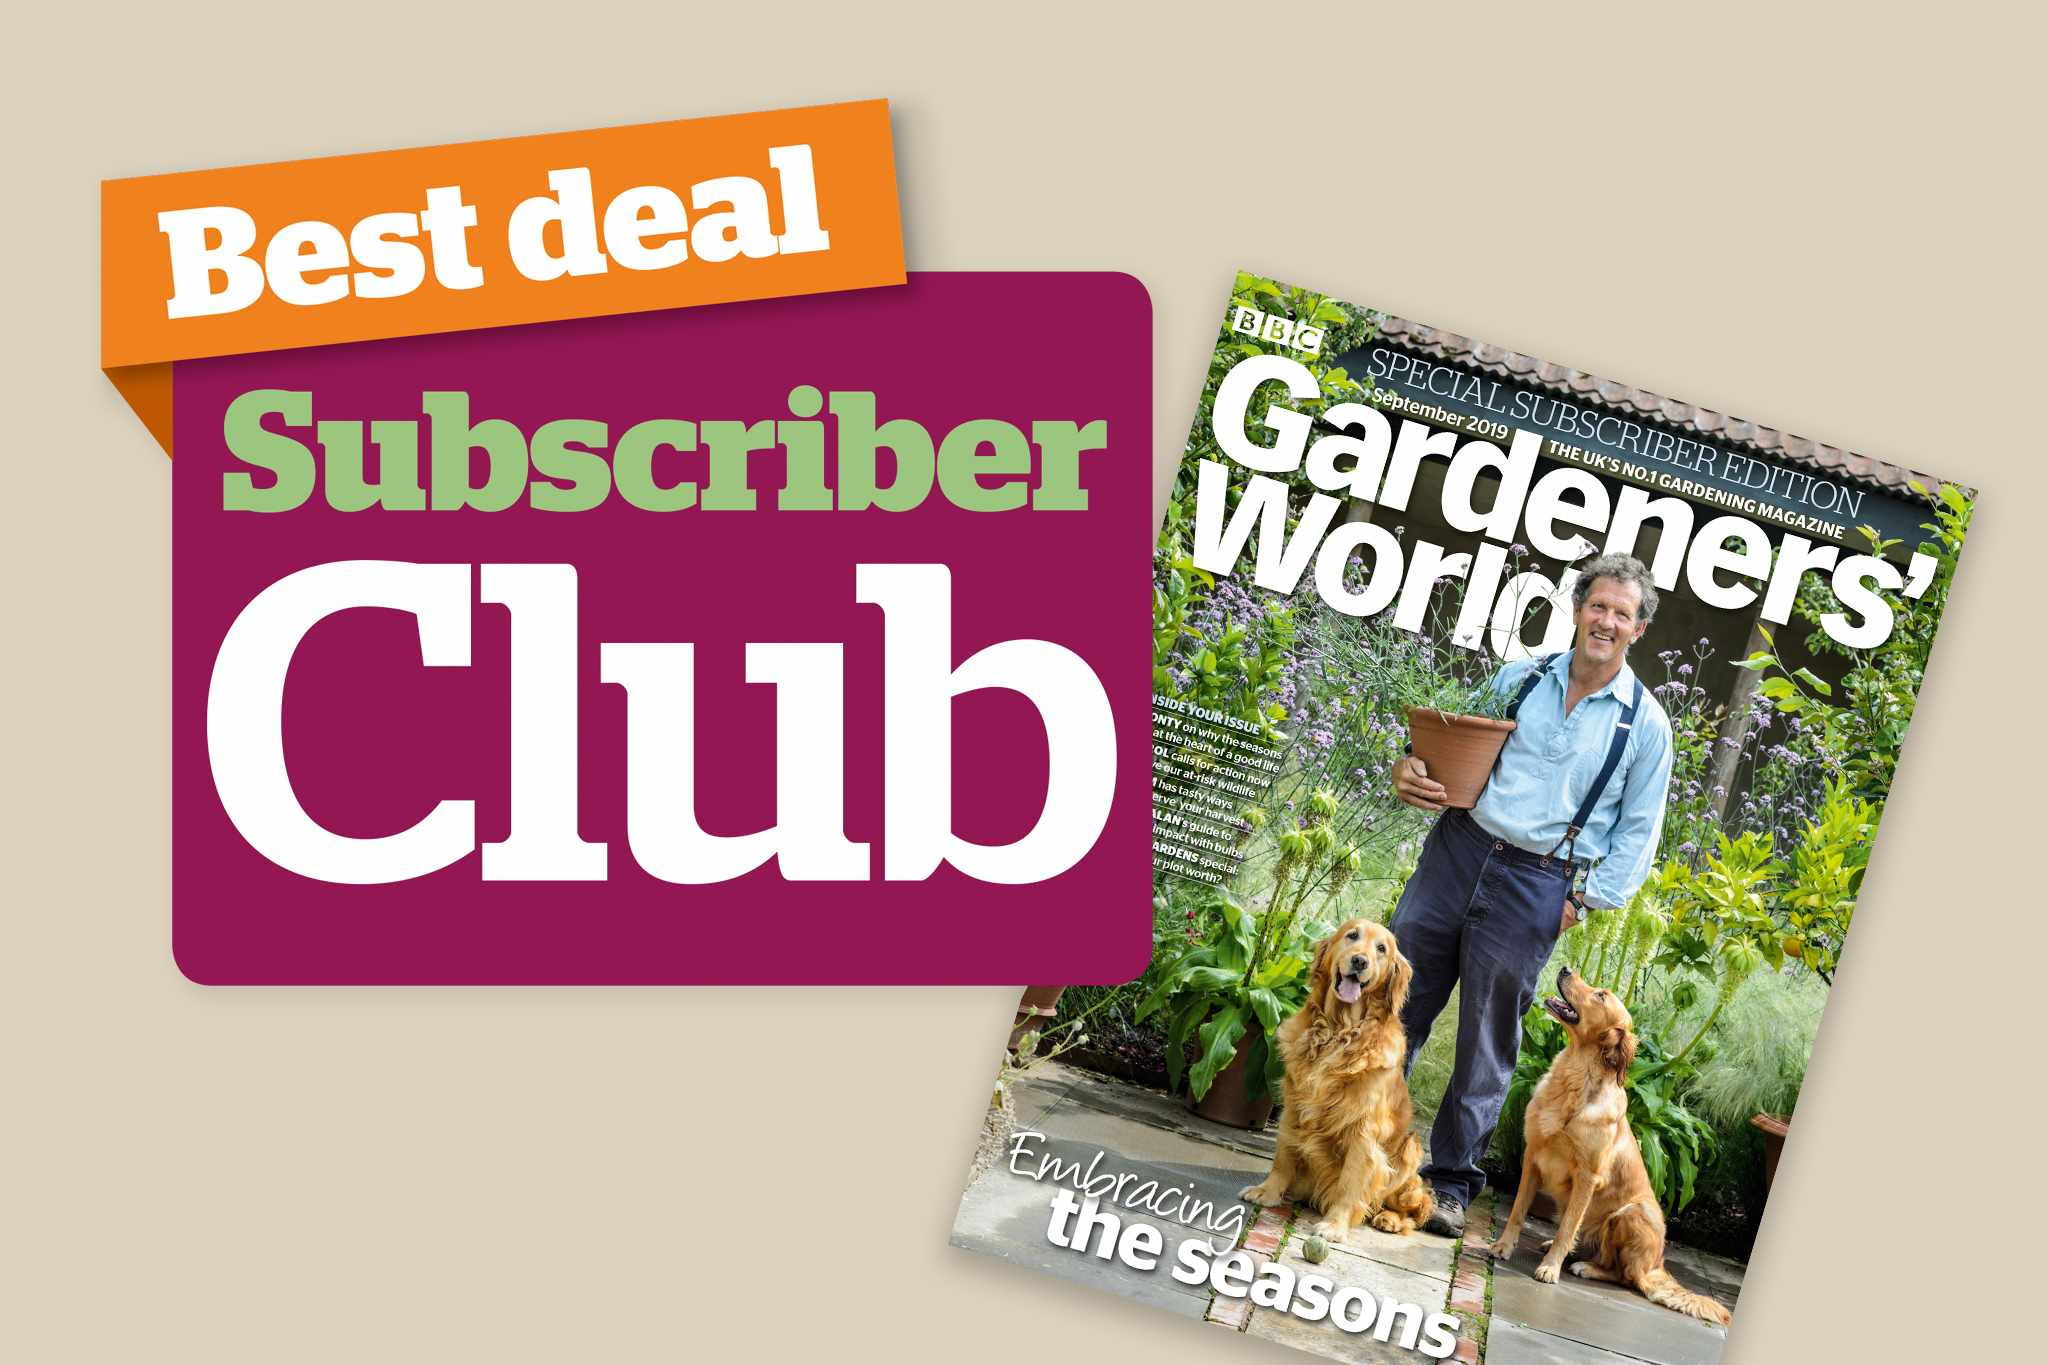 Subscribers save 10% with selected suppliers - new September issue